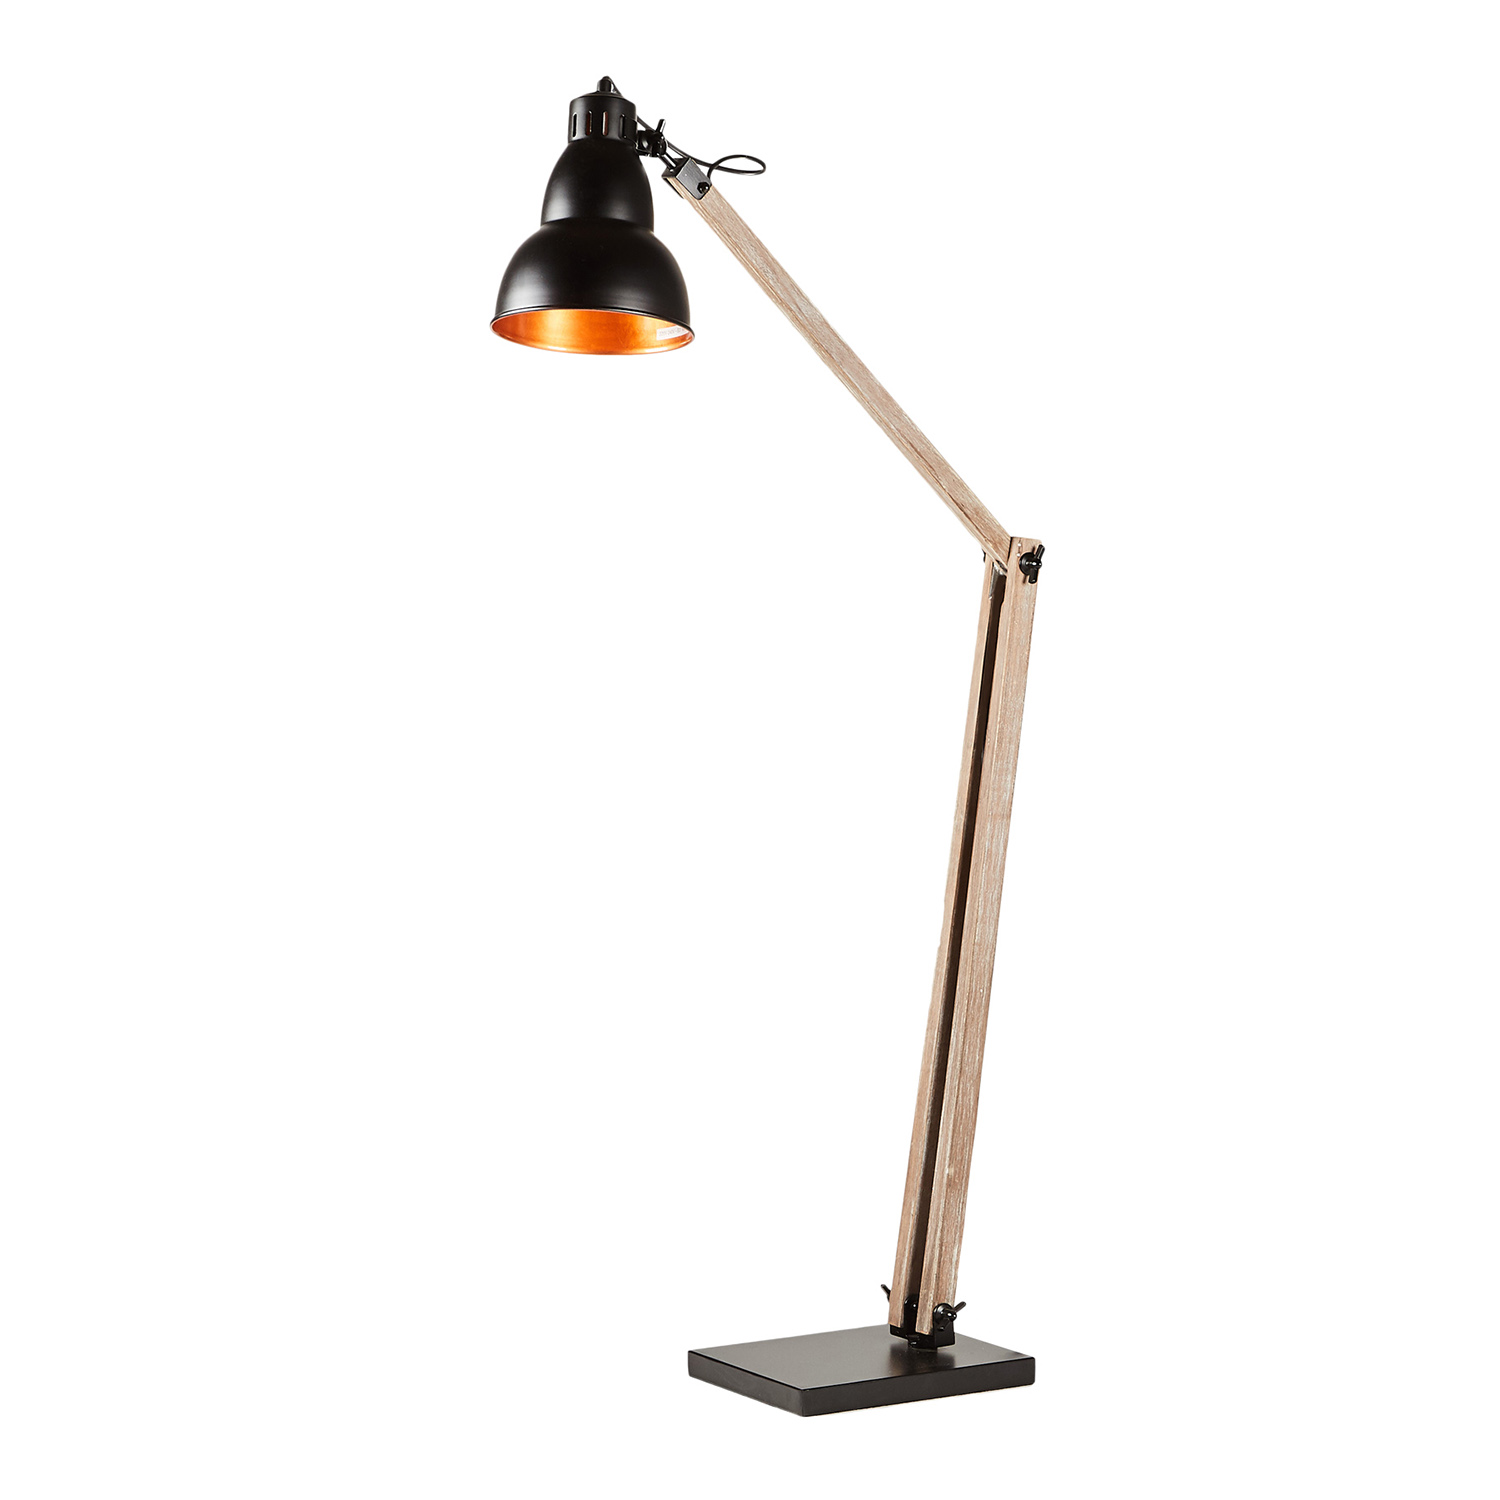 Details About Large Table Floor Lamp Swing Swivel Arm Study Bedroom Reading H137cm Wooden Base